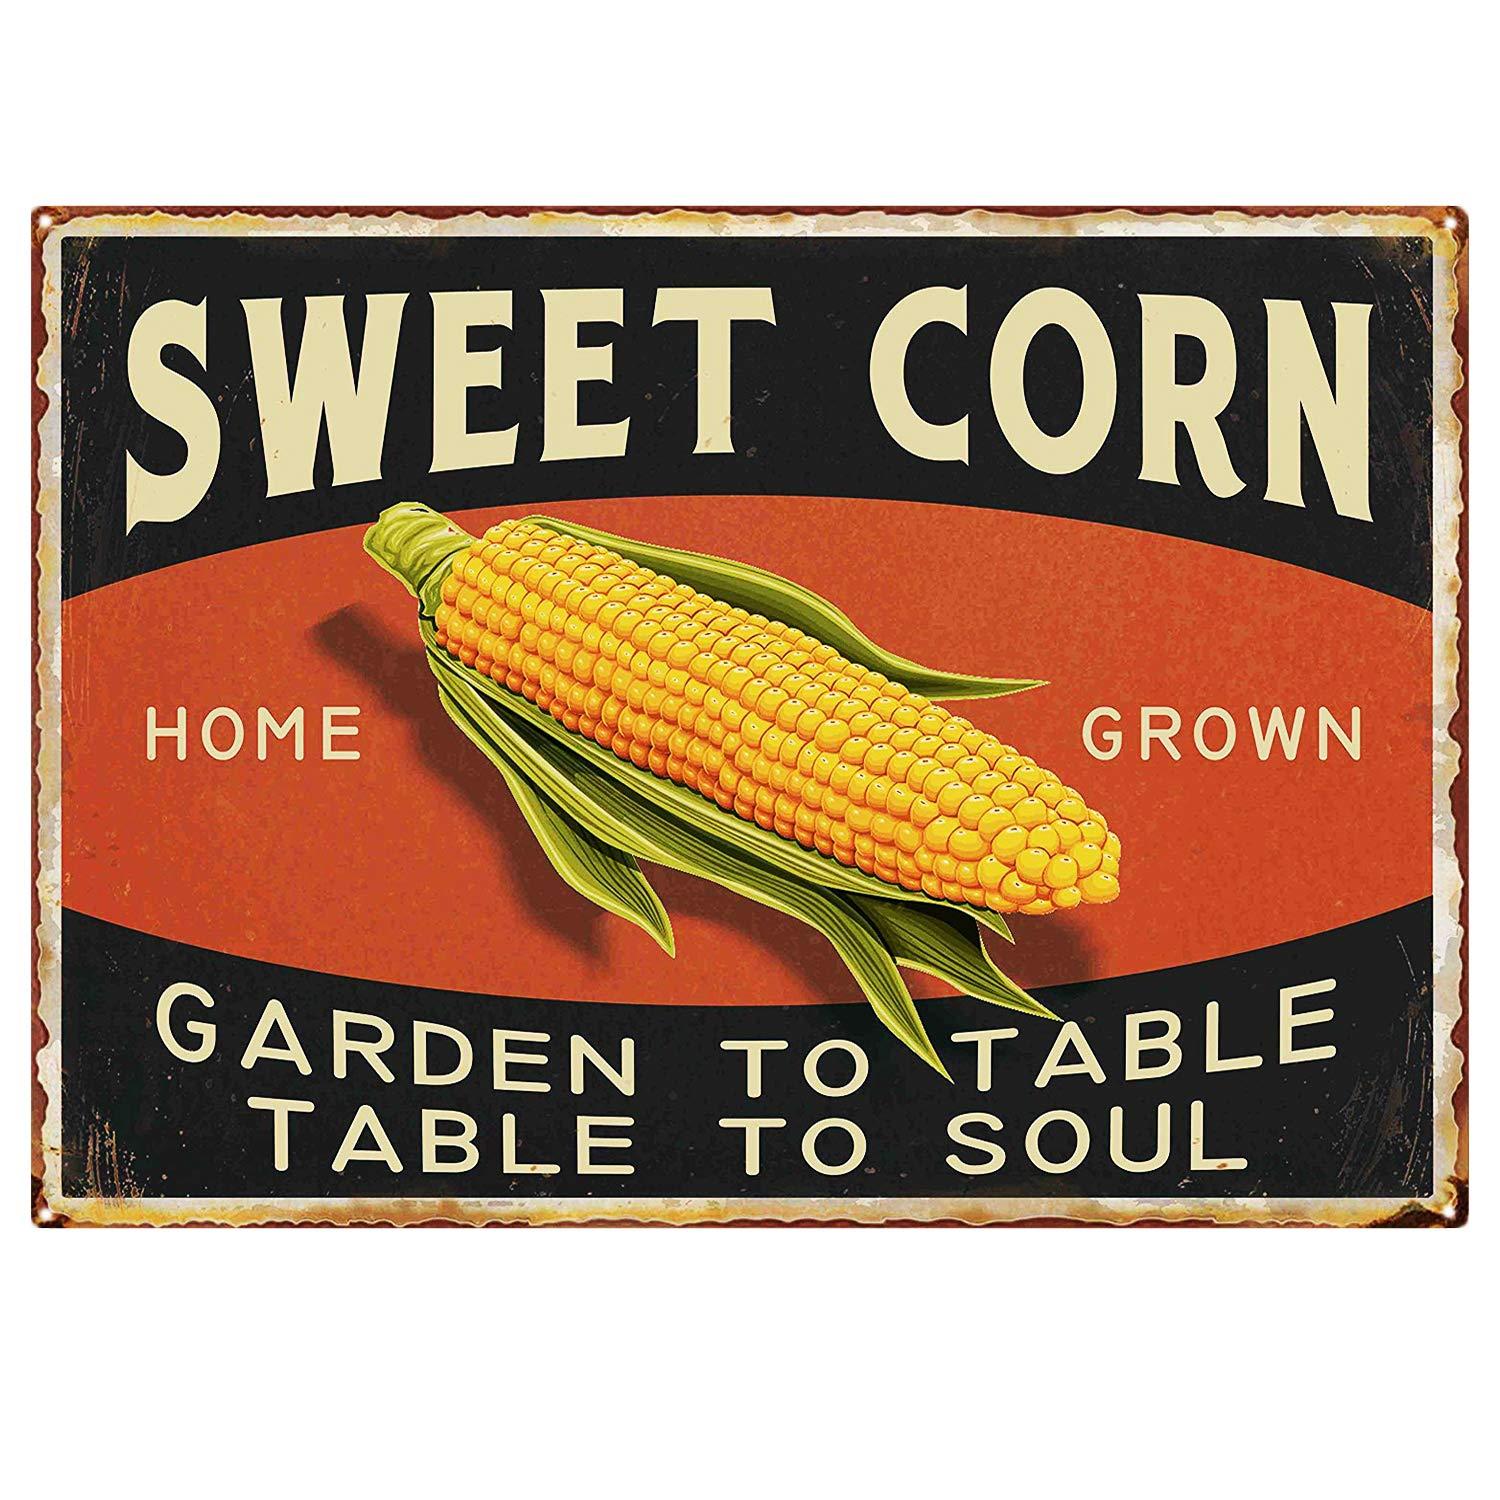 "SIGNT Sweet Corn Retro Vintage Metal Tin Sign Home Bar Kitchen Farmhouse Home Decor Signs Gifts Size 8"" X 12""(Garden to Table Table to Soul)"